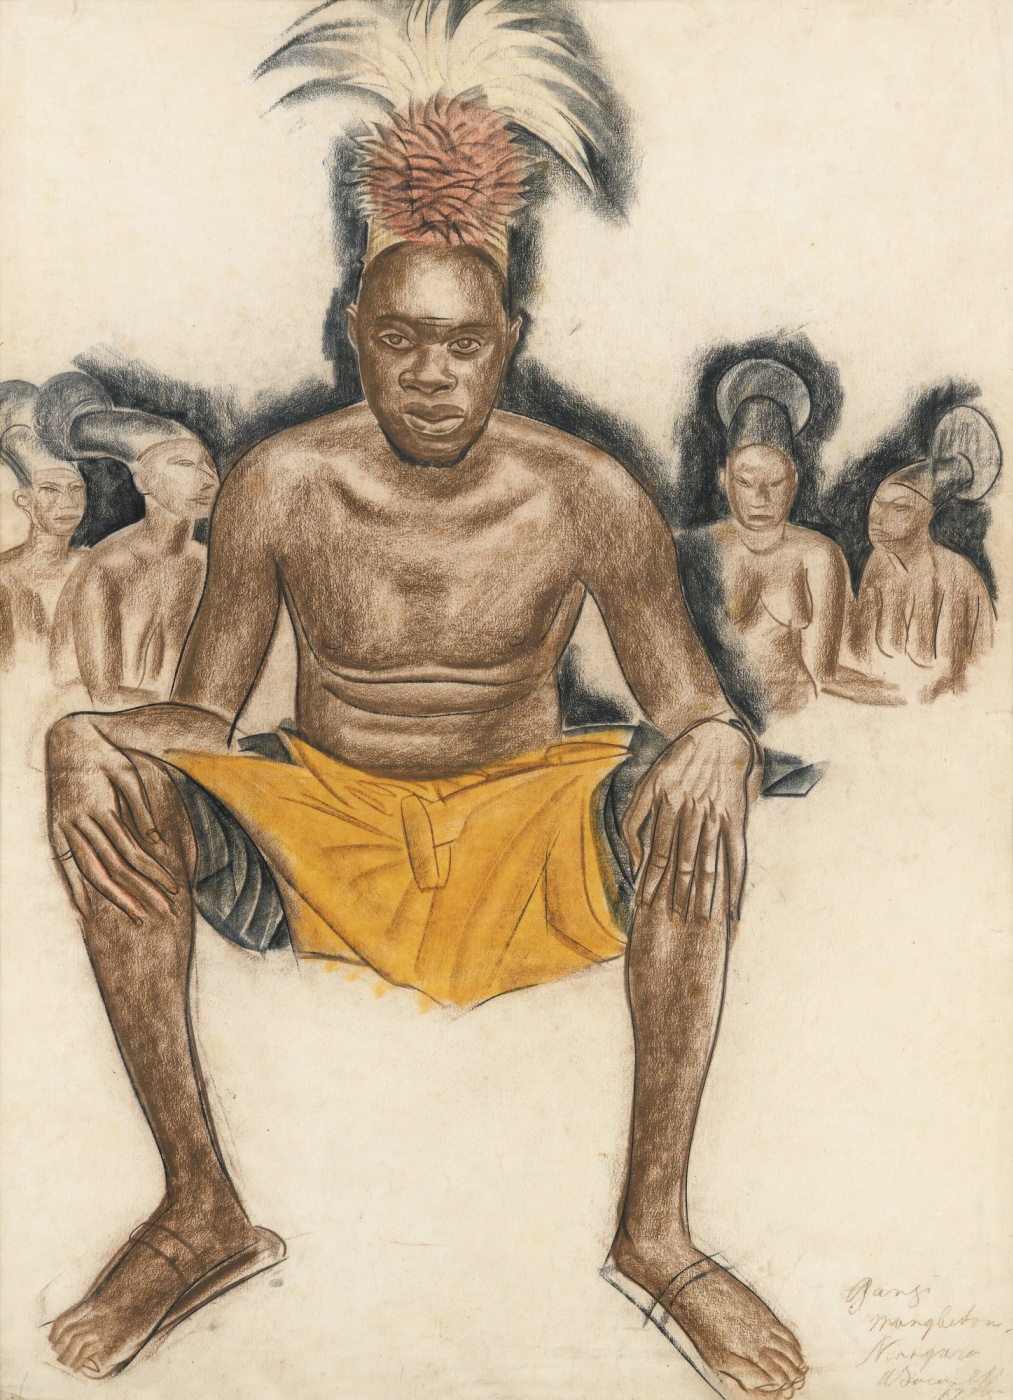 Alexander Yakovlev. Portrait of the leader Mangbetu. Ganzi. 1925